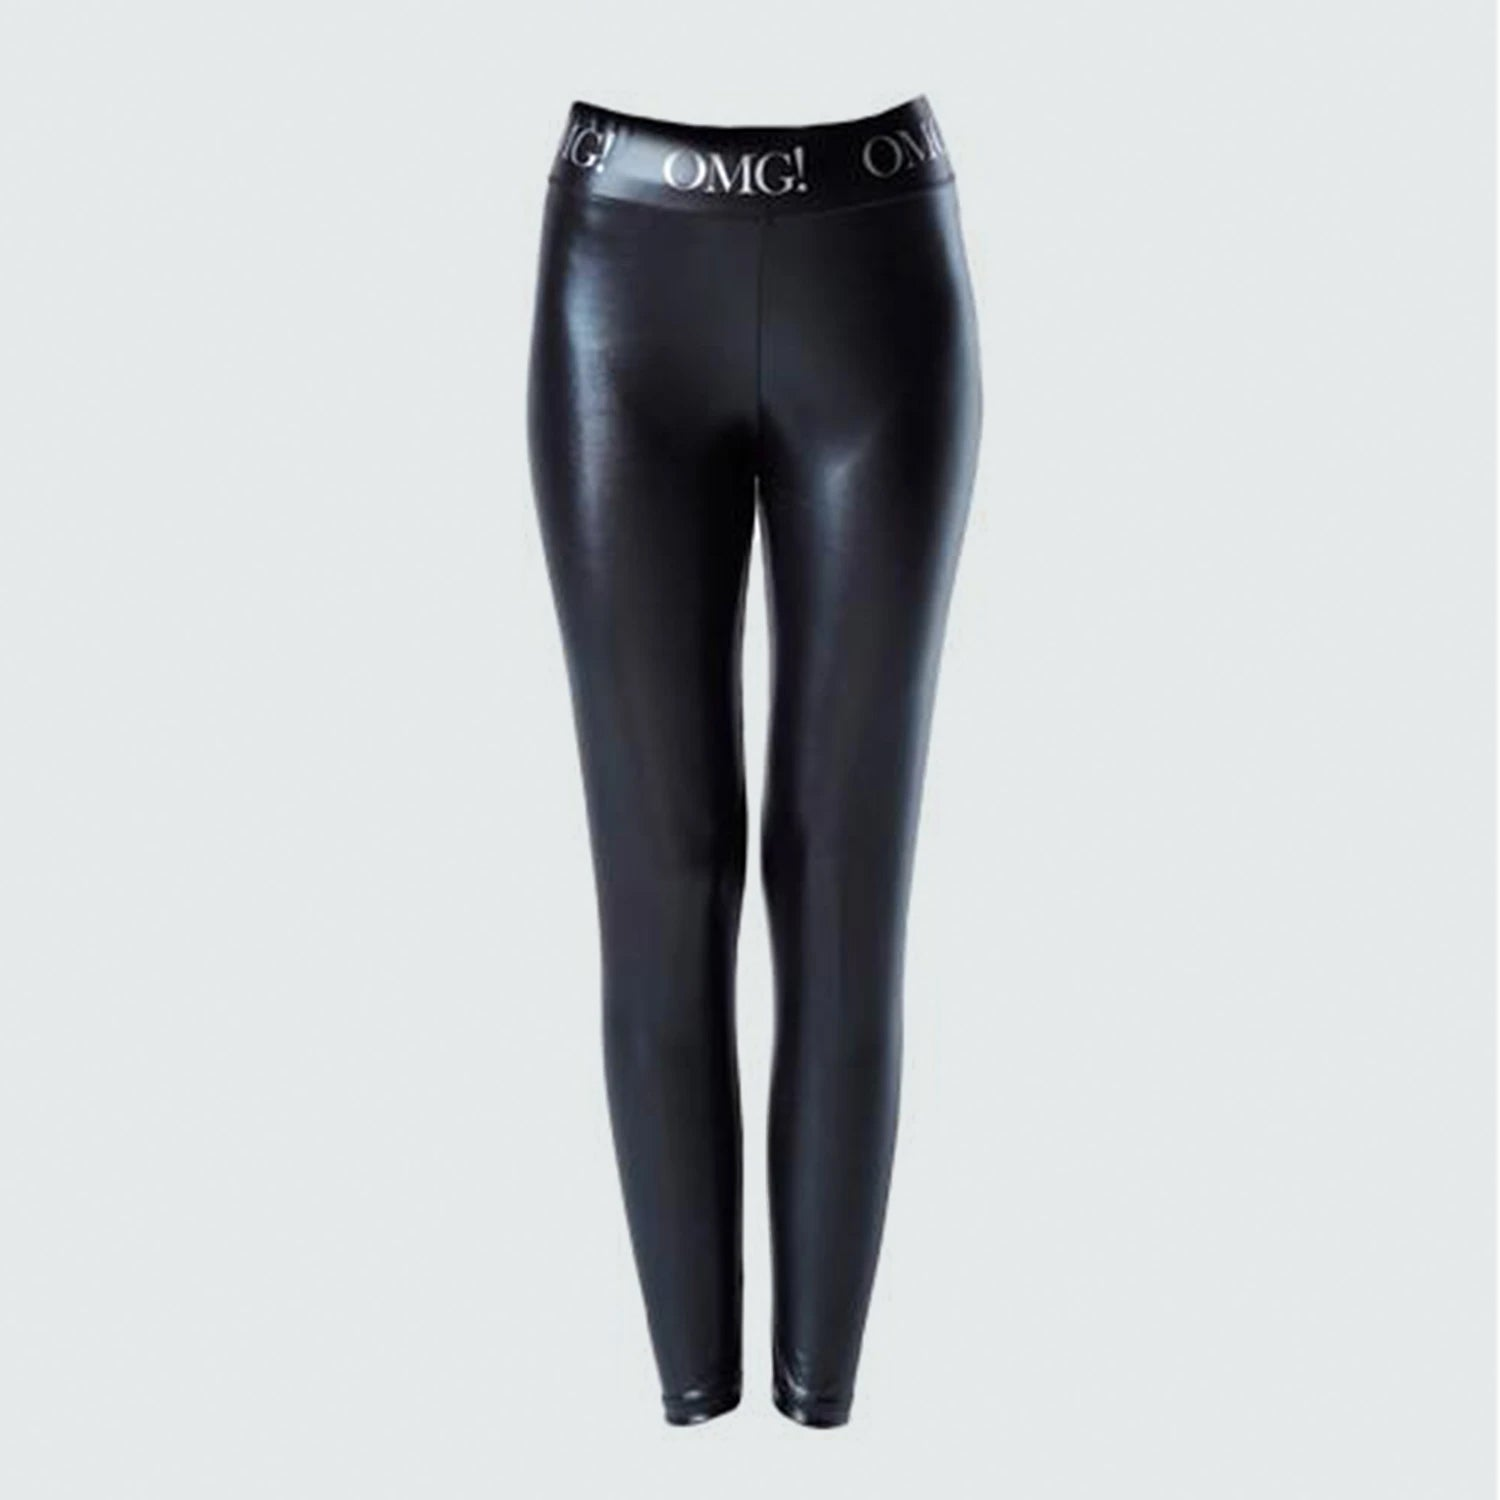 OMG! PLATINUM LEGGINGS - DOUBLE DARE